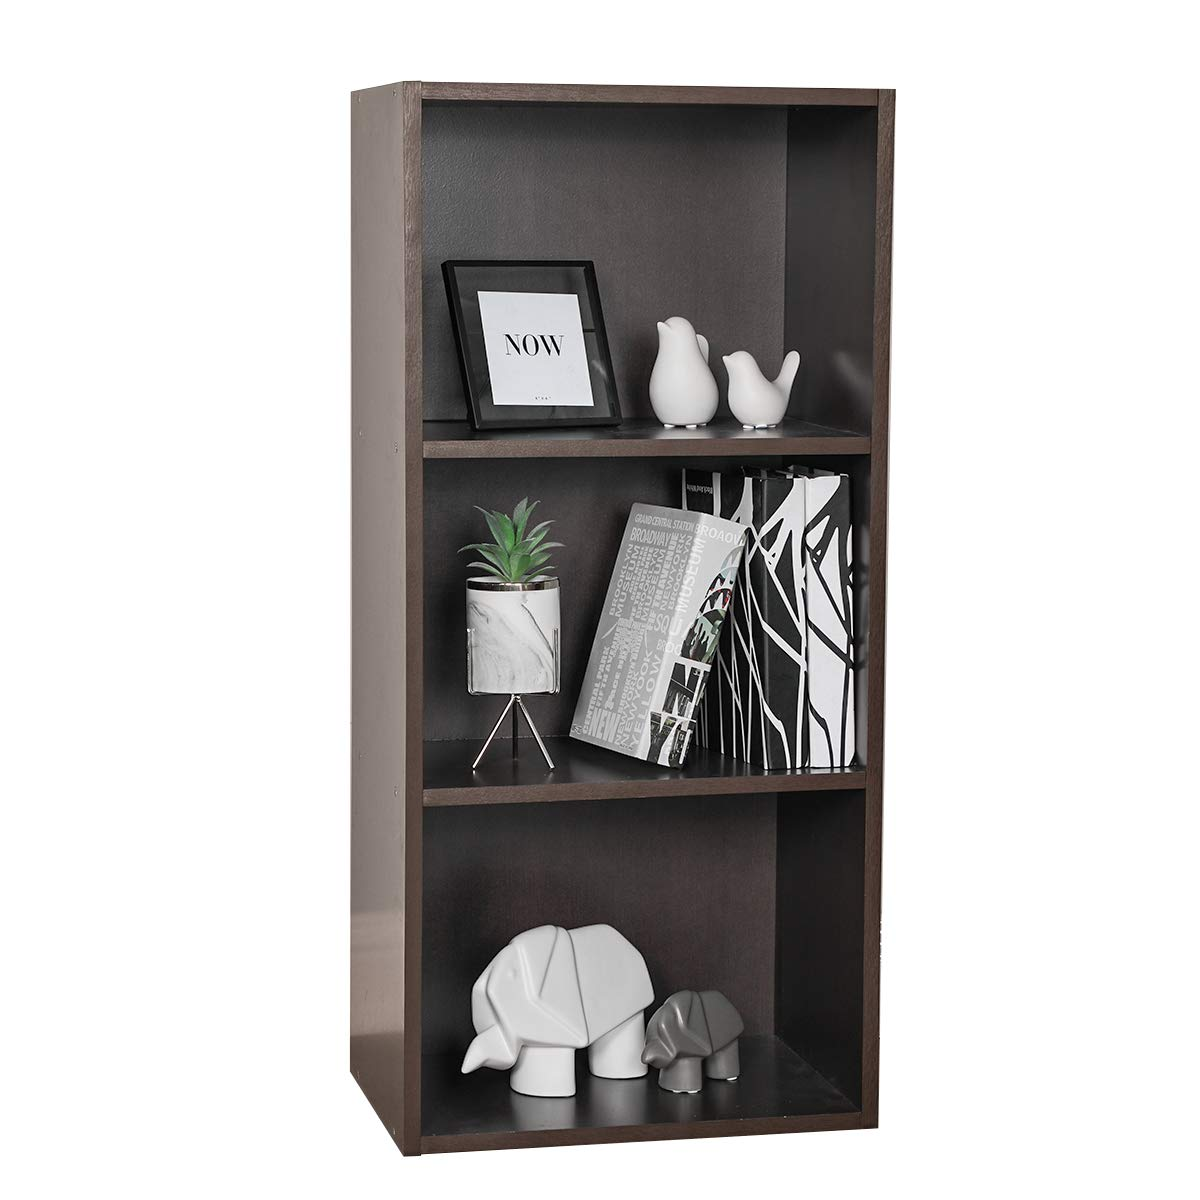 Coavas 3-Shelves Storage-Bookcase, Kids Bookshelf-Organizer for Toys, Multi-Purpose Wood Open Cabinet for Home, 35 x 11.8 x 16.5 inches Espresso